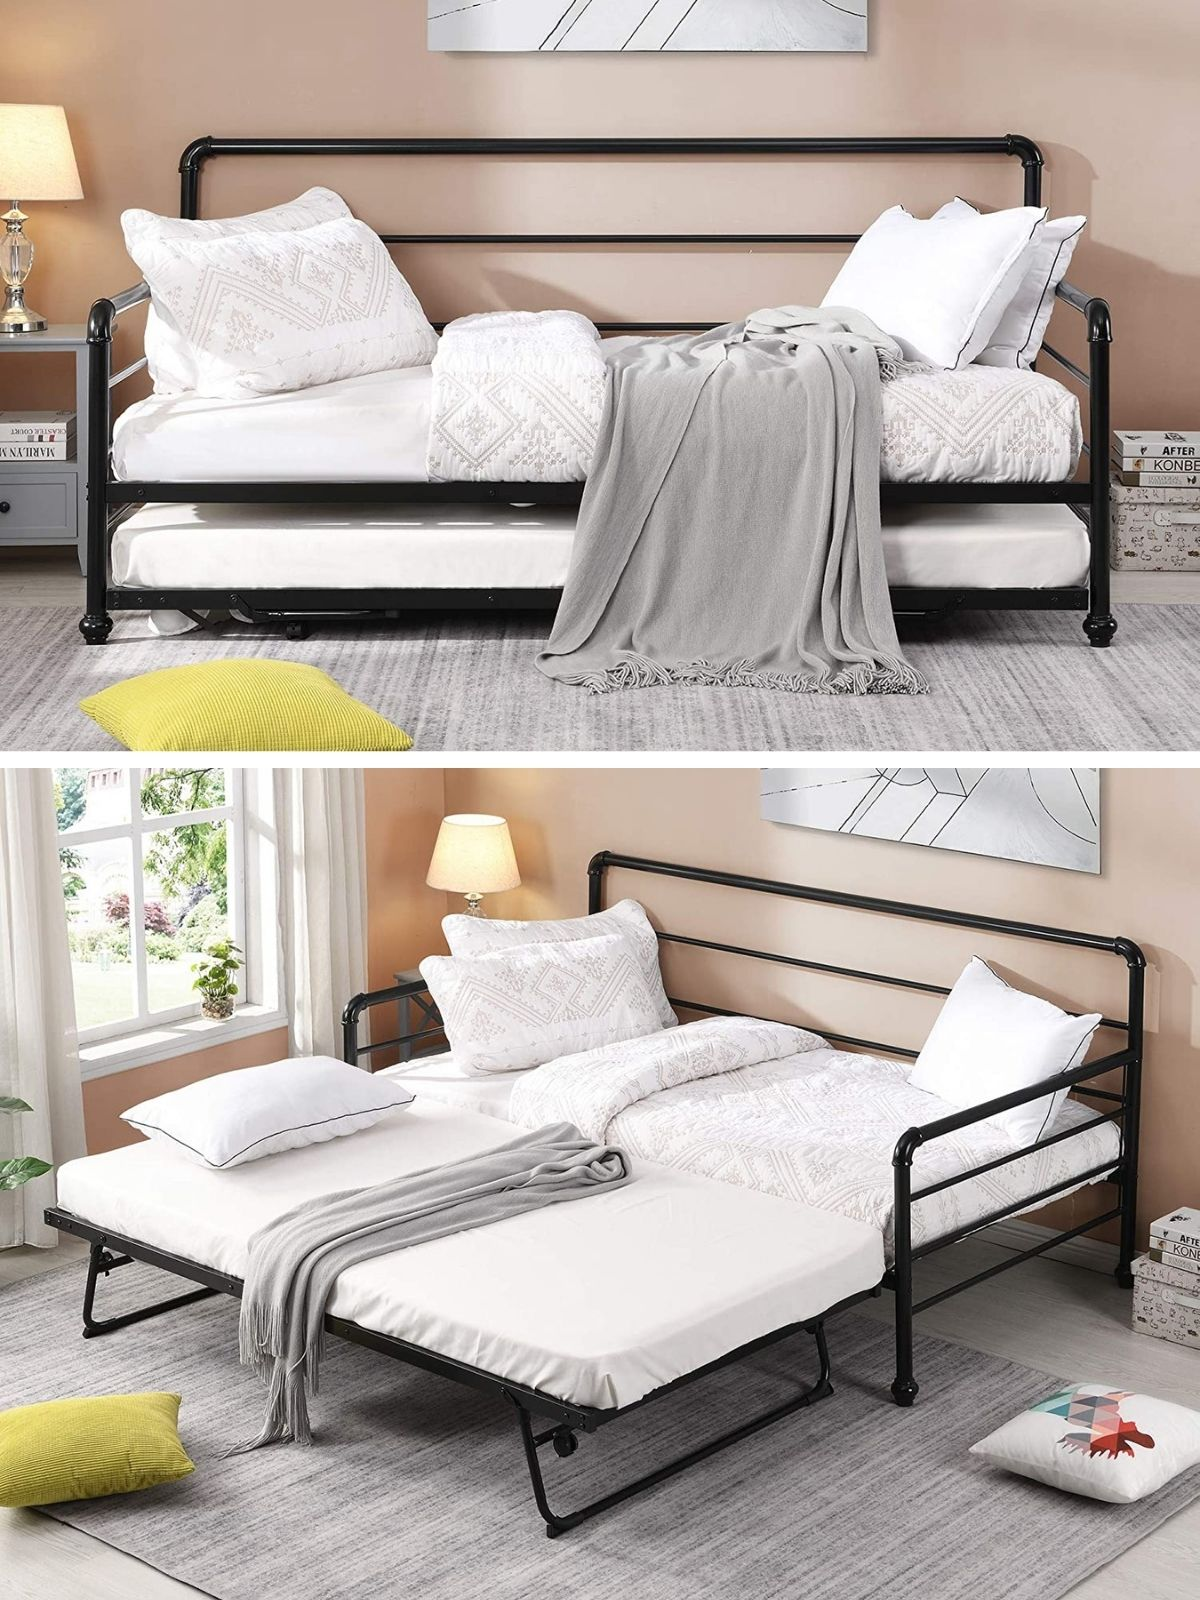 daybed black - 20 delightful daybeds that easily convert into comfortable beds